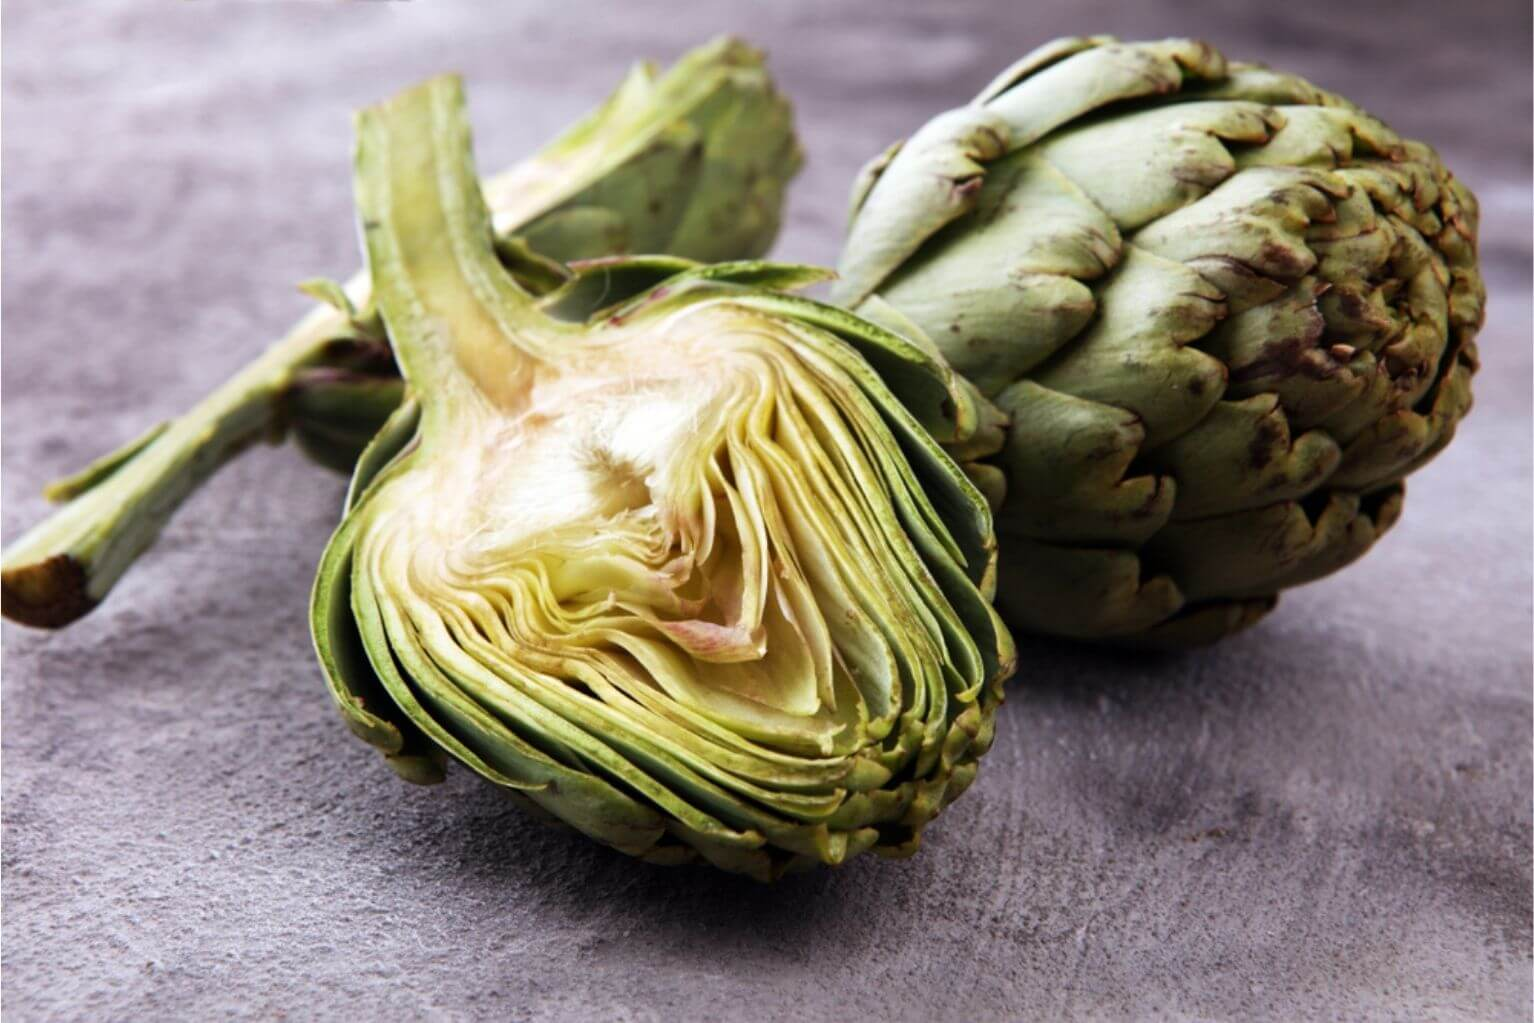 Two artichokes on a wooden table with one sliced in half.